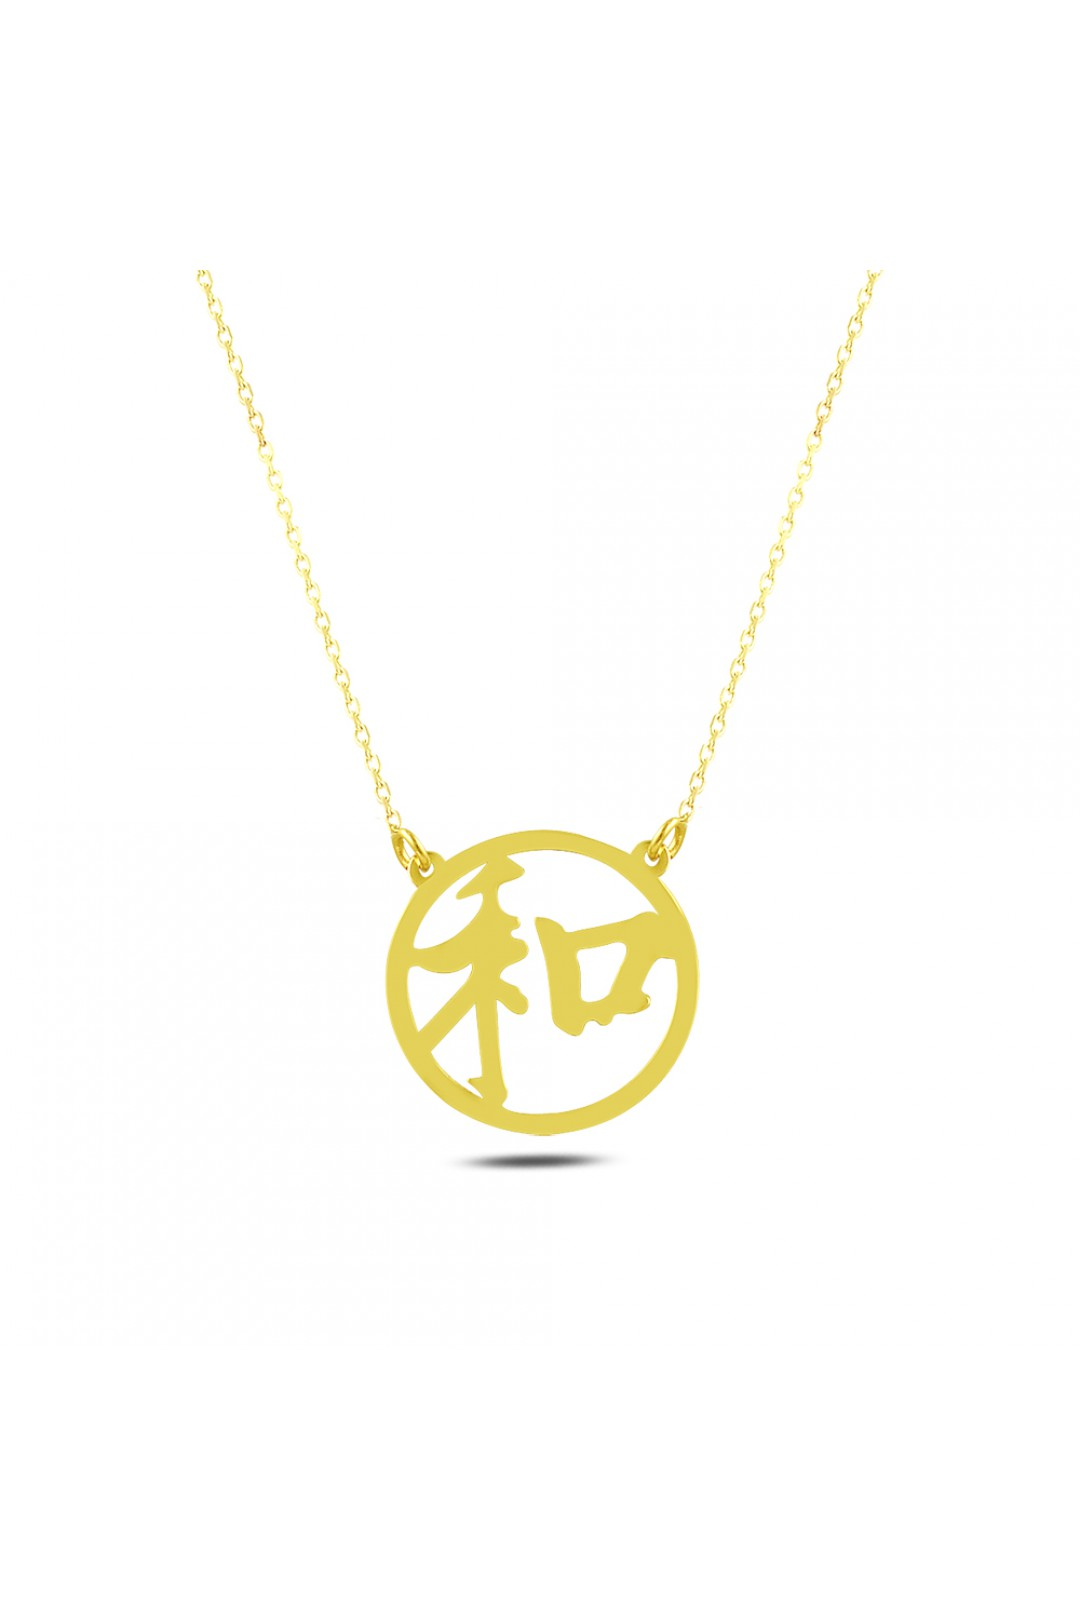 PEACE CHINESE ALPHABET NECKLACE